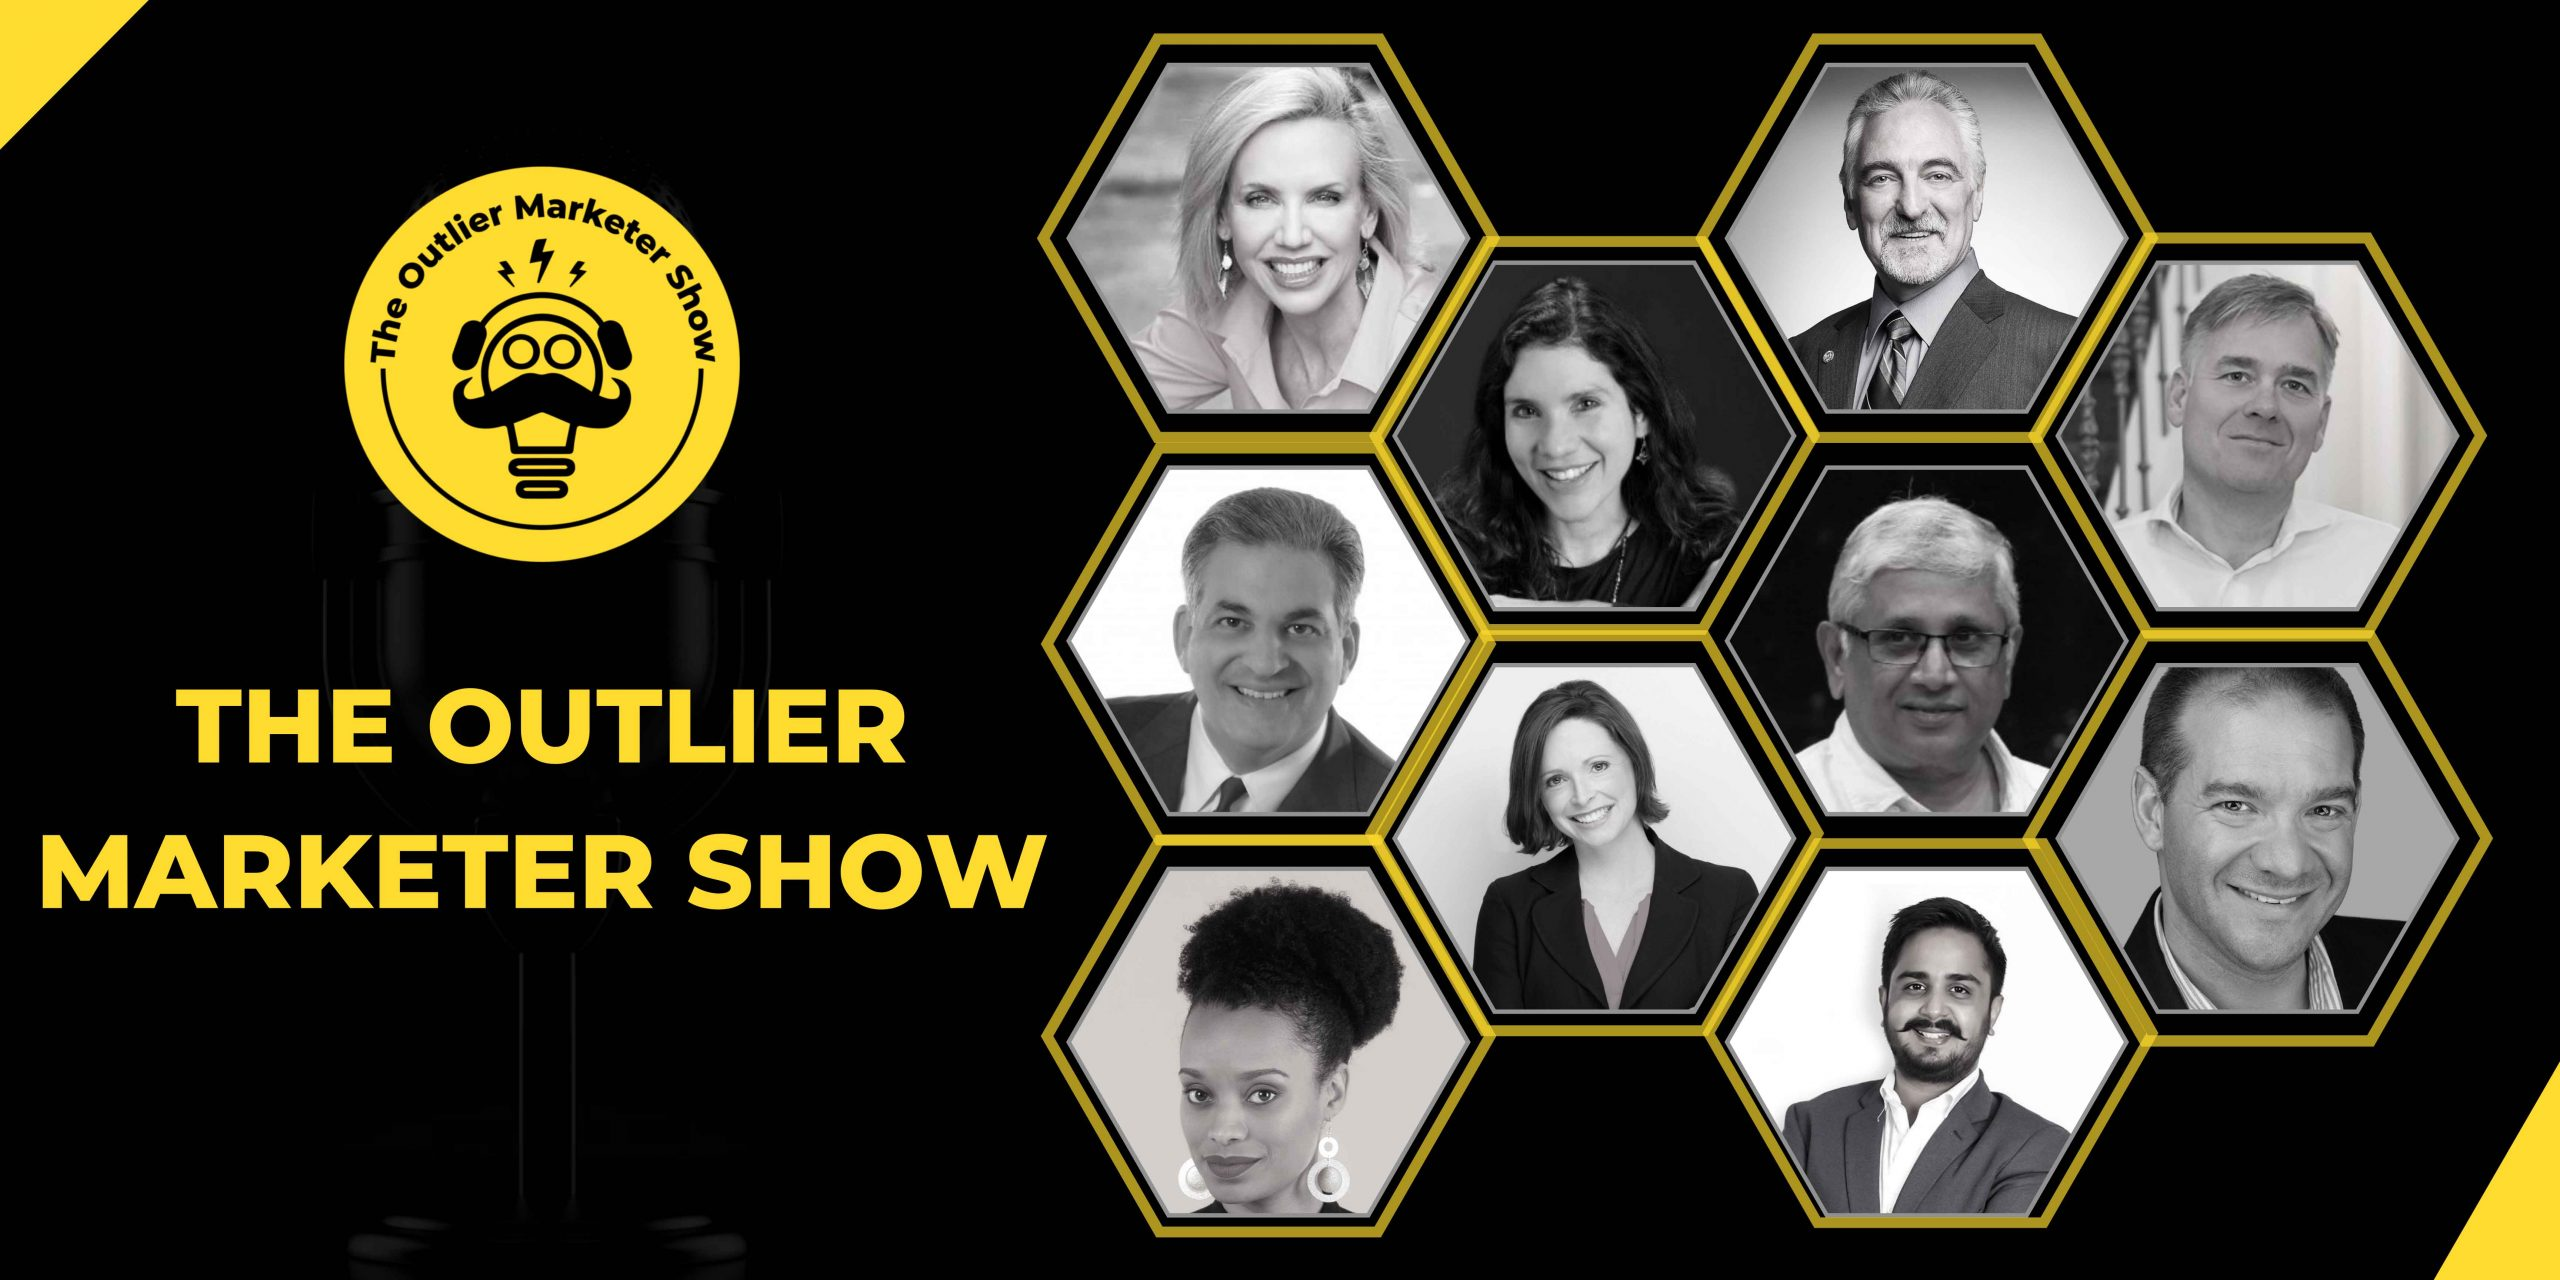 The Outlier Marketer Show